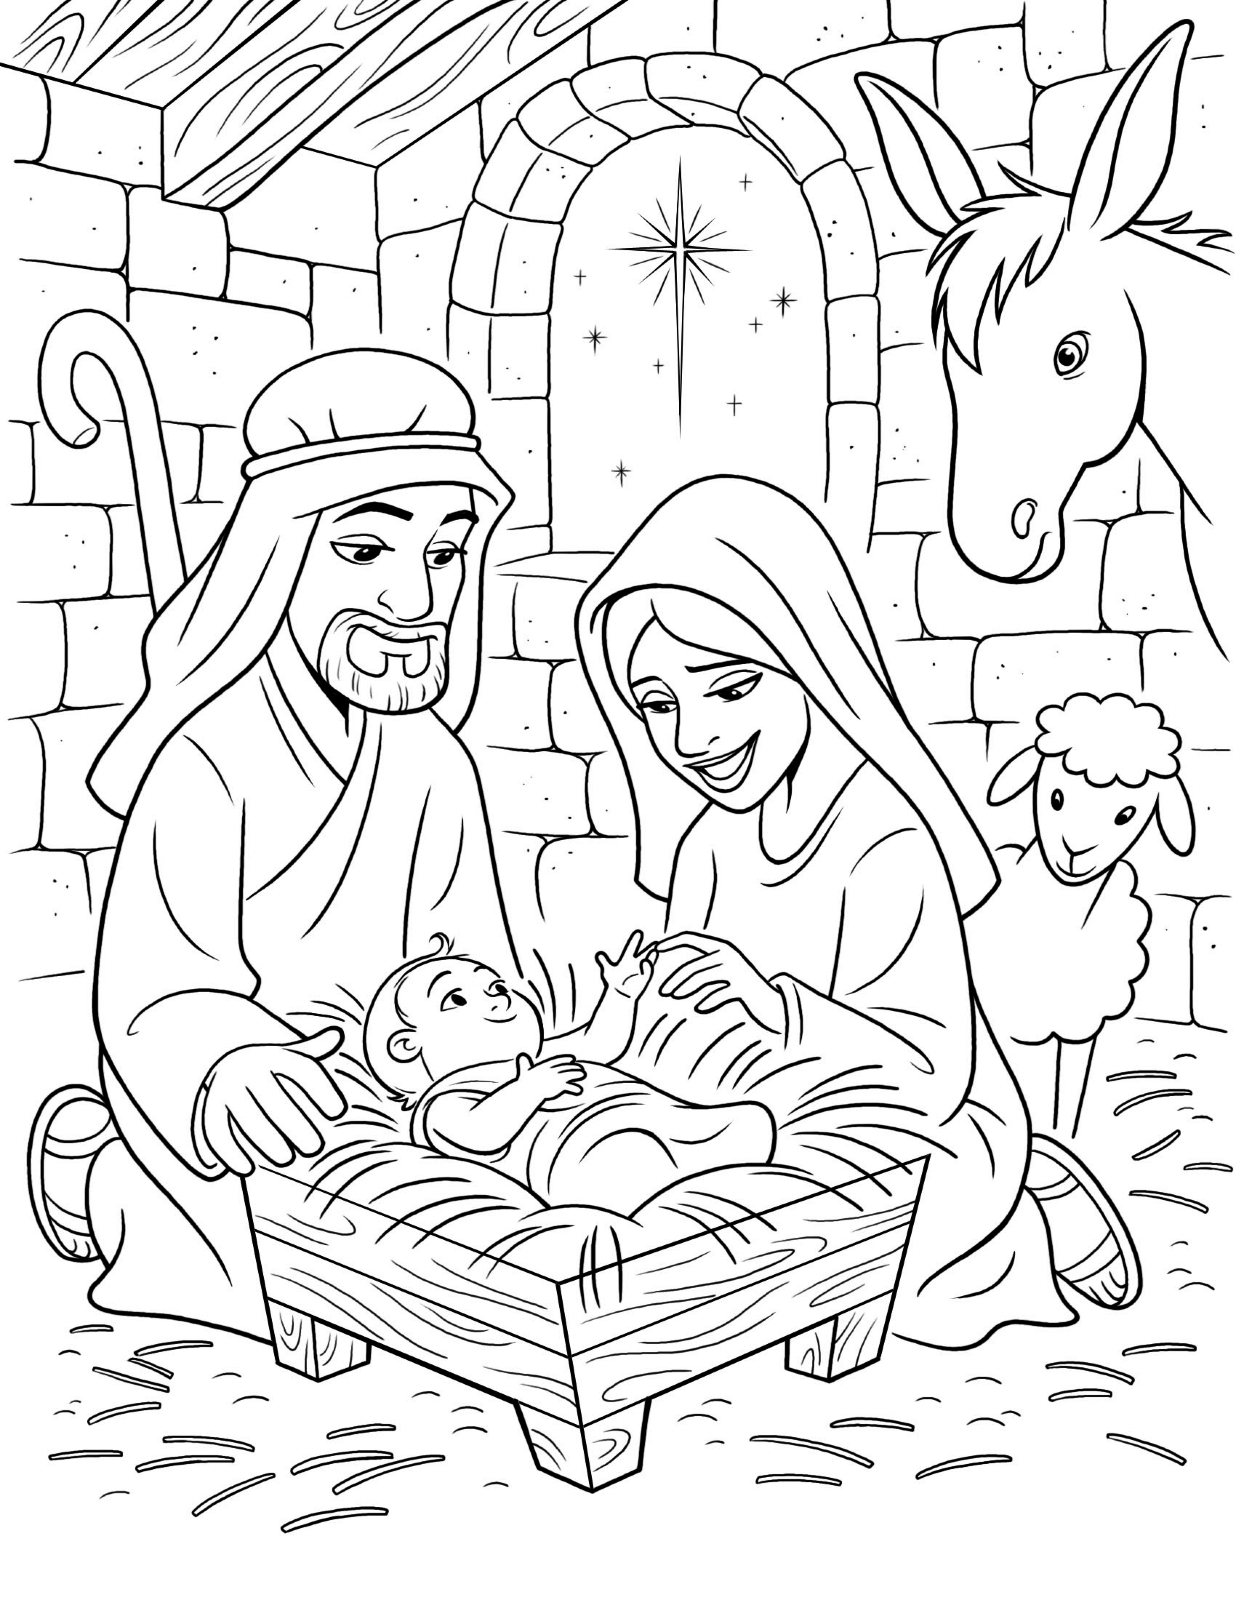 1236x1600 Lds Nativity Scene Coloring Lds Nativity Scene Coloring Pages